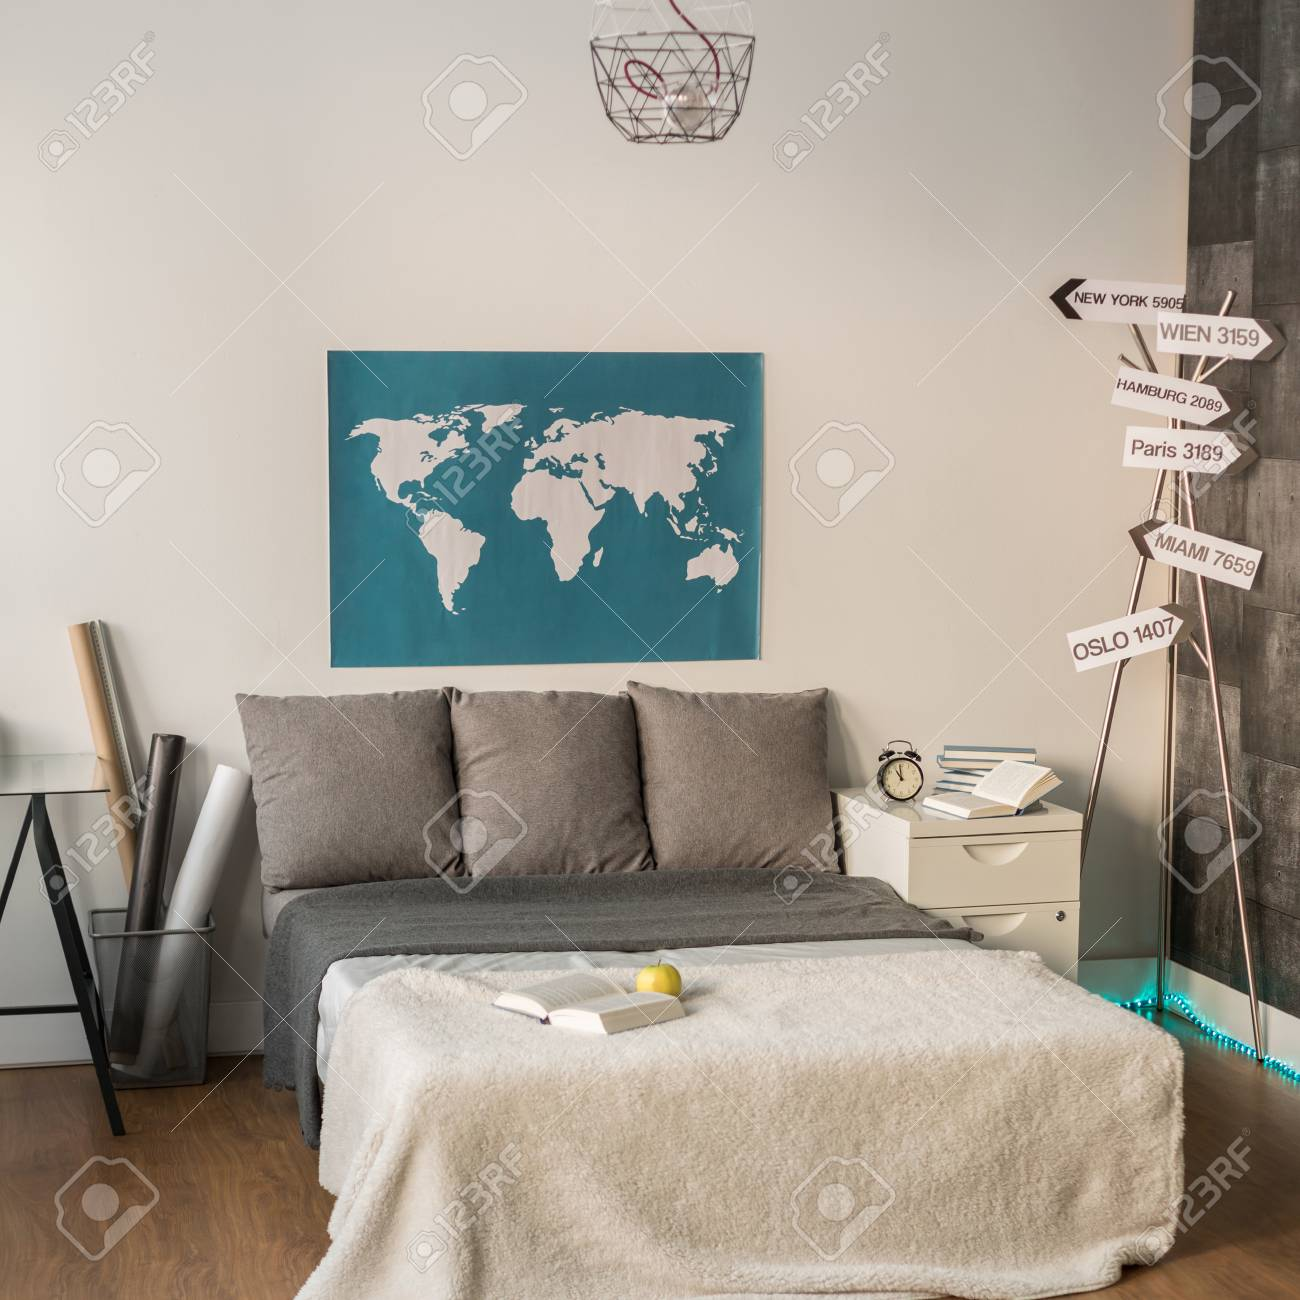 World Map In Bedroom For Couple Of Travelers Stock Photo Picture